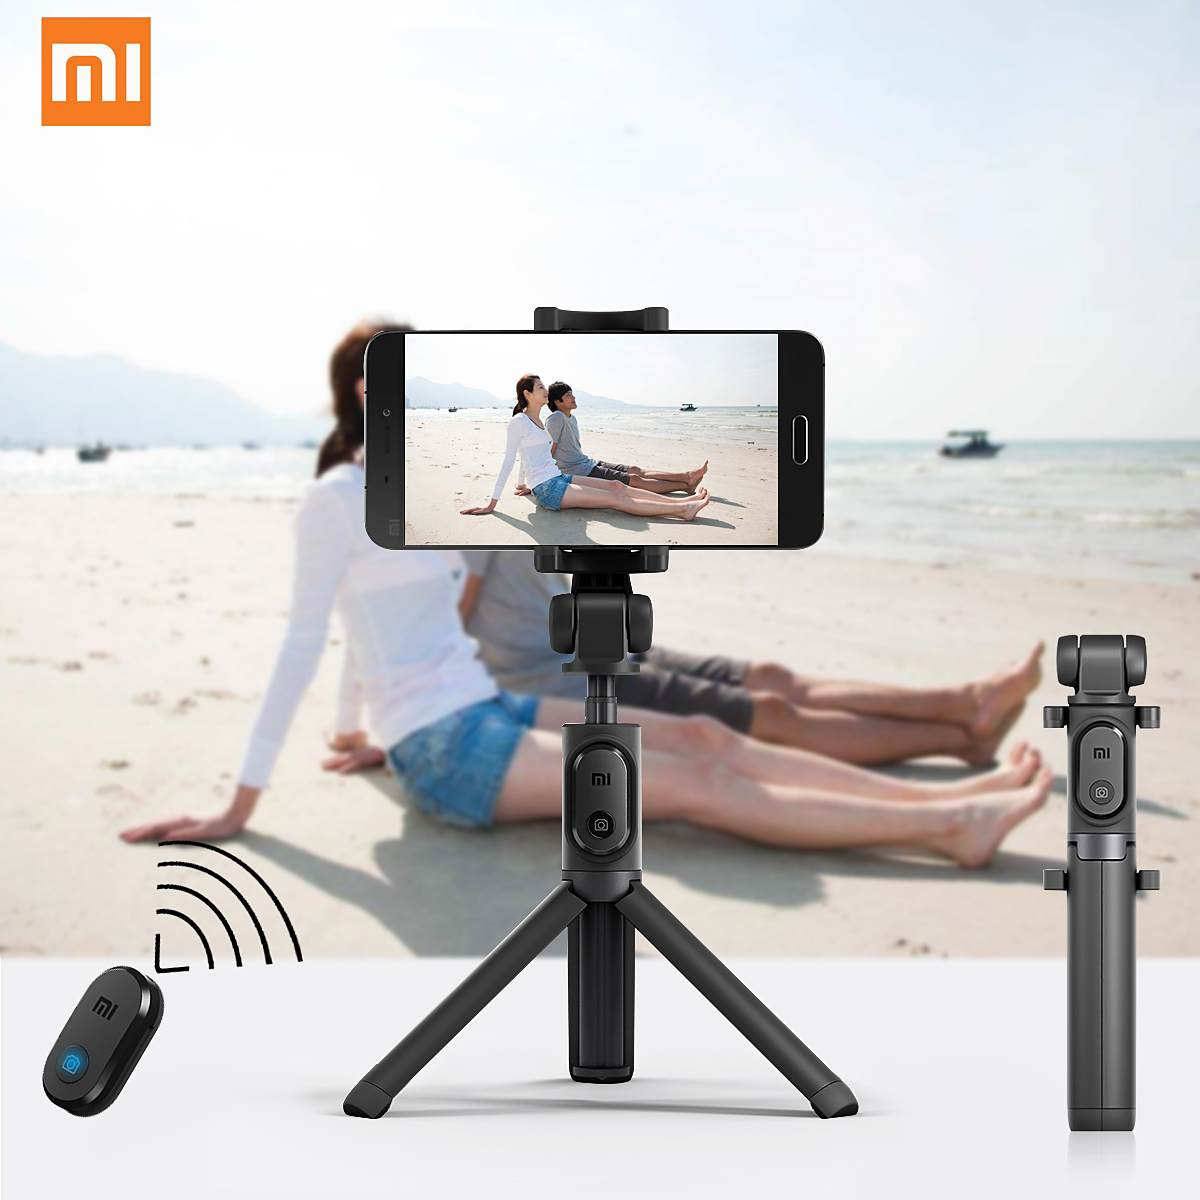 Original Xiaomi 2in1 Selfie Stick Bluetooth Remote Control Monopod Holder Tripod Universal For Android 4.3 / IOS 5.0 And Latast